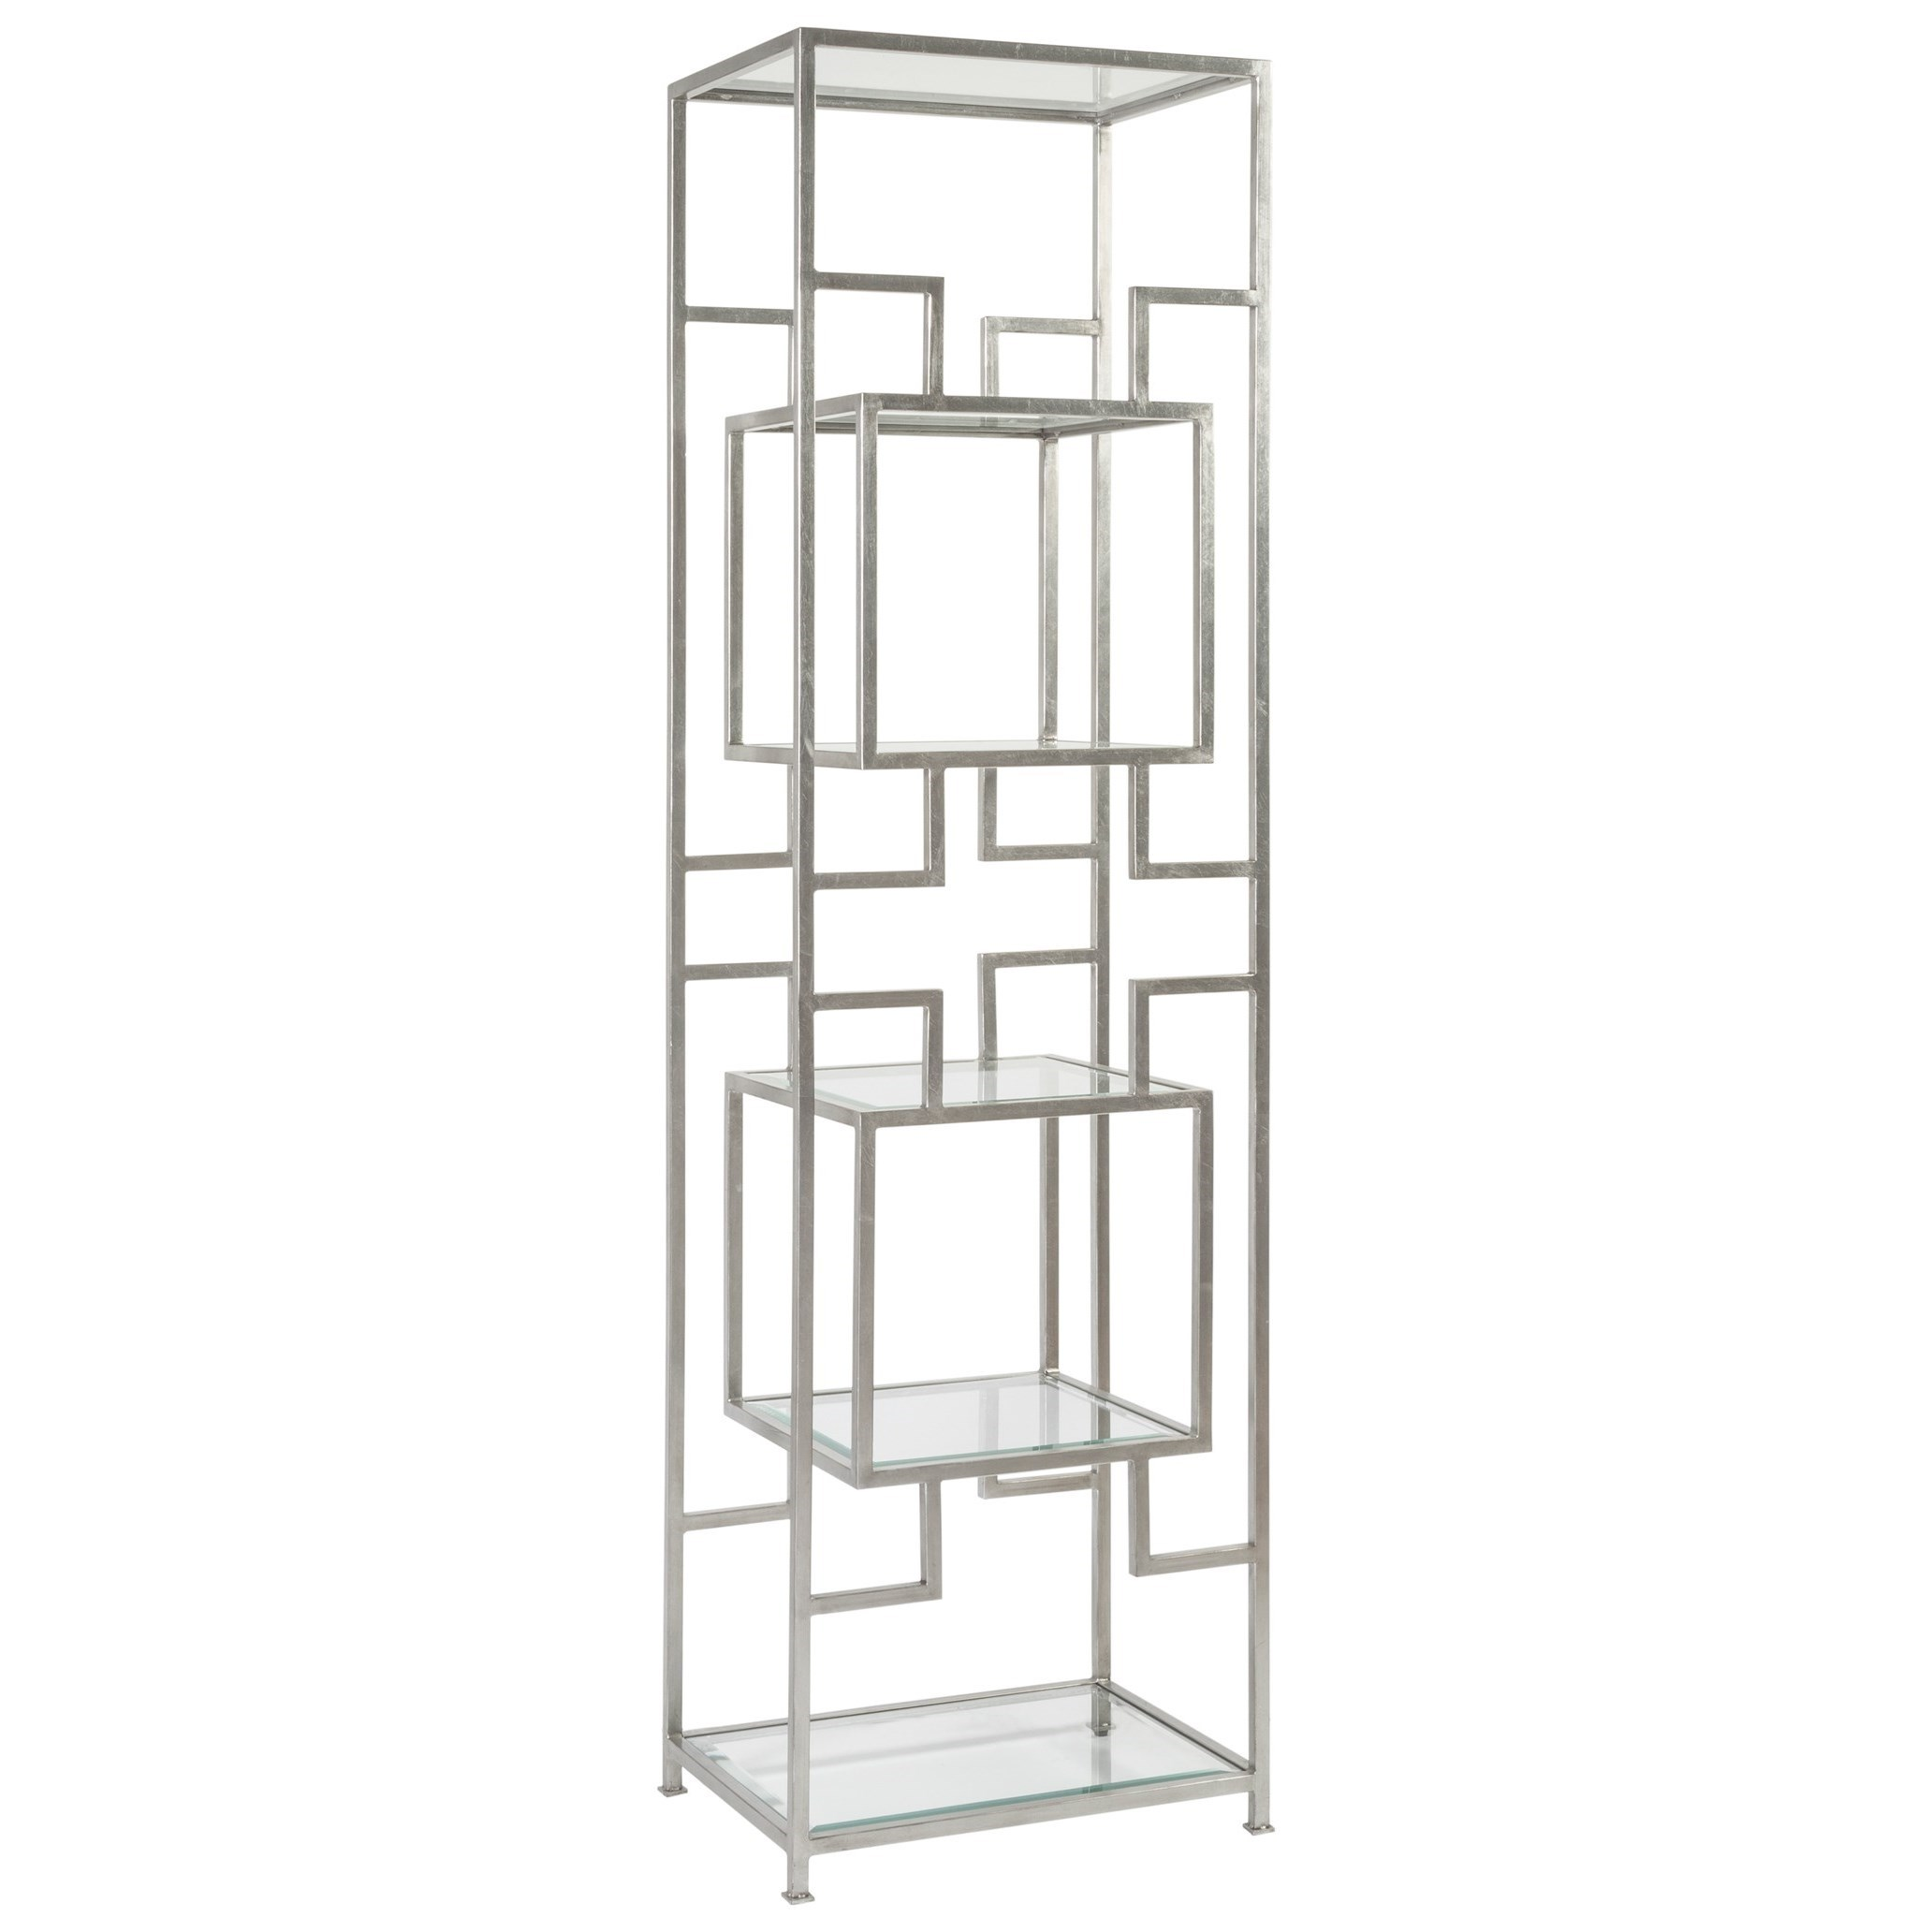 Metal Designs Suspension Slim Etagere by Artistica at Baer's Furniture